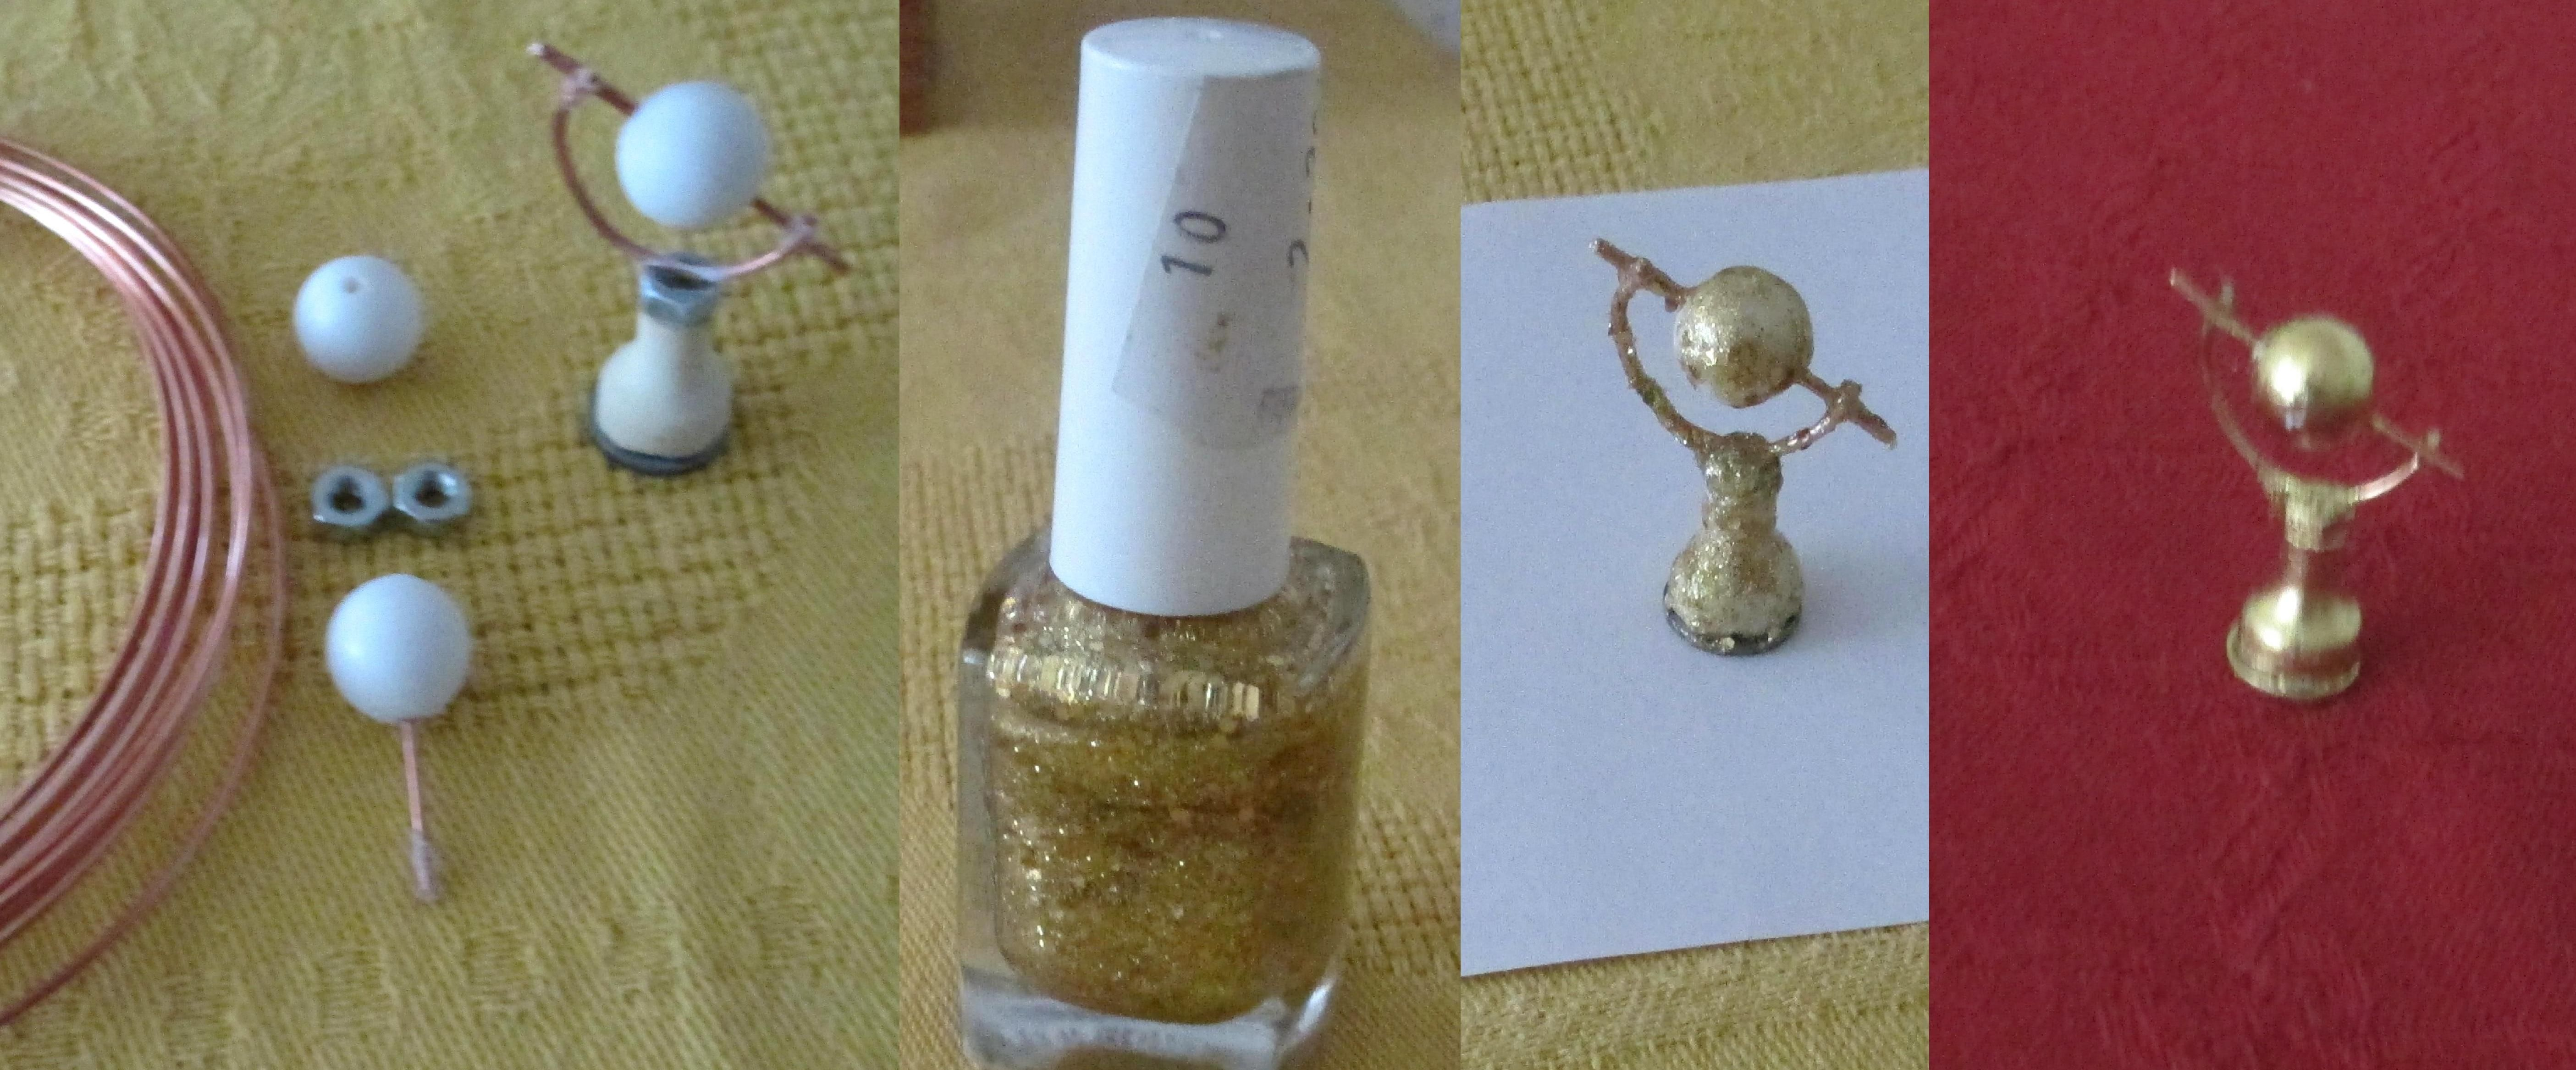 small globe on Poirot s work table - nail polish wasn t right - permanent marker is better